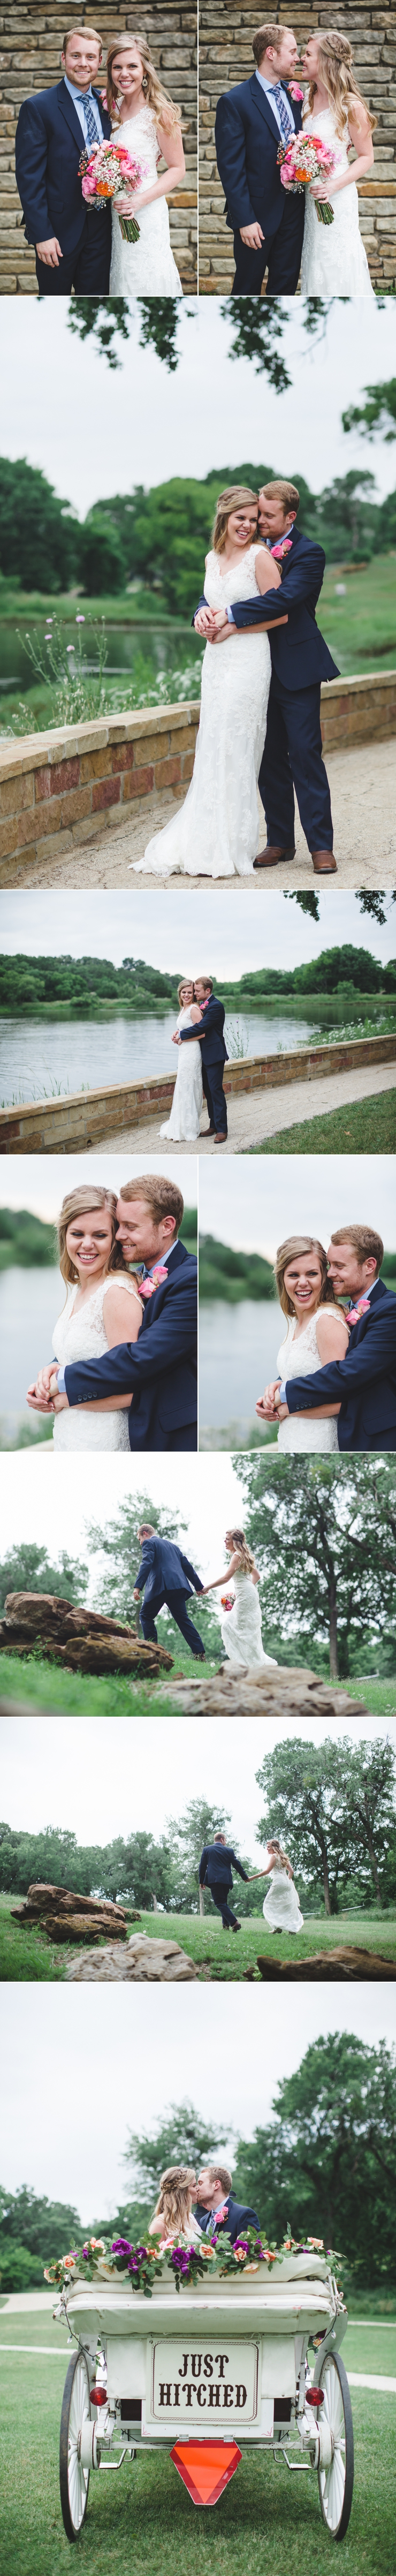 White Wedding - Blog Collages 13.jpg